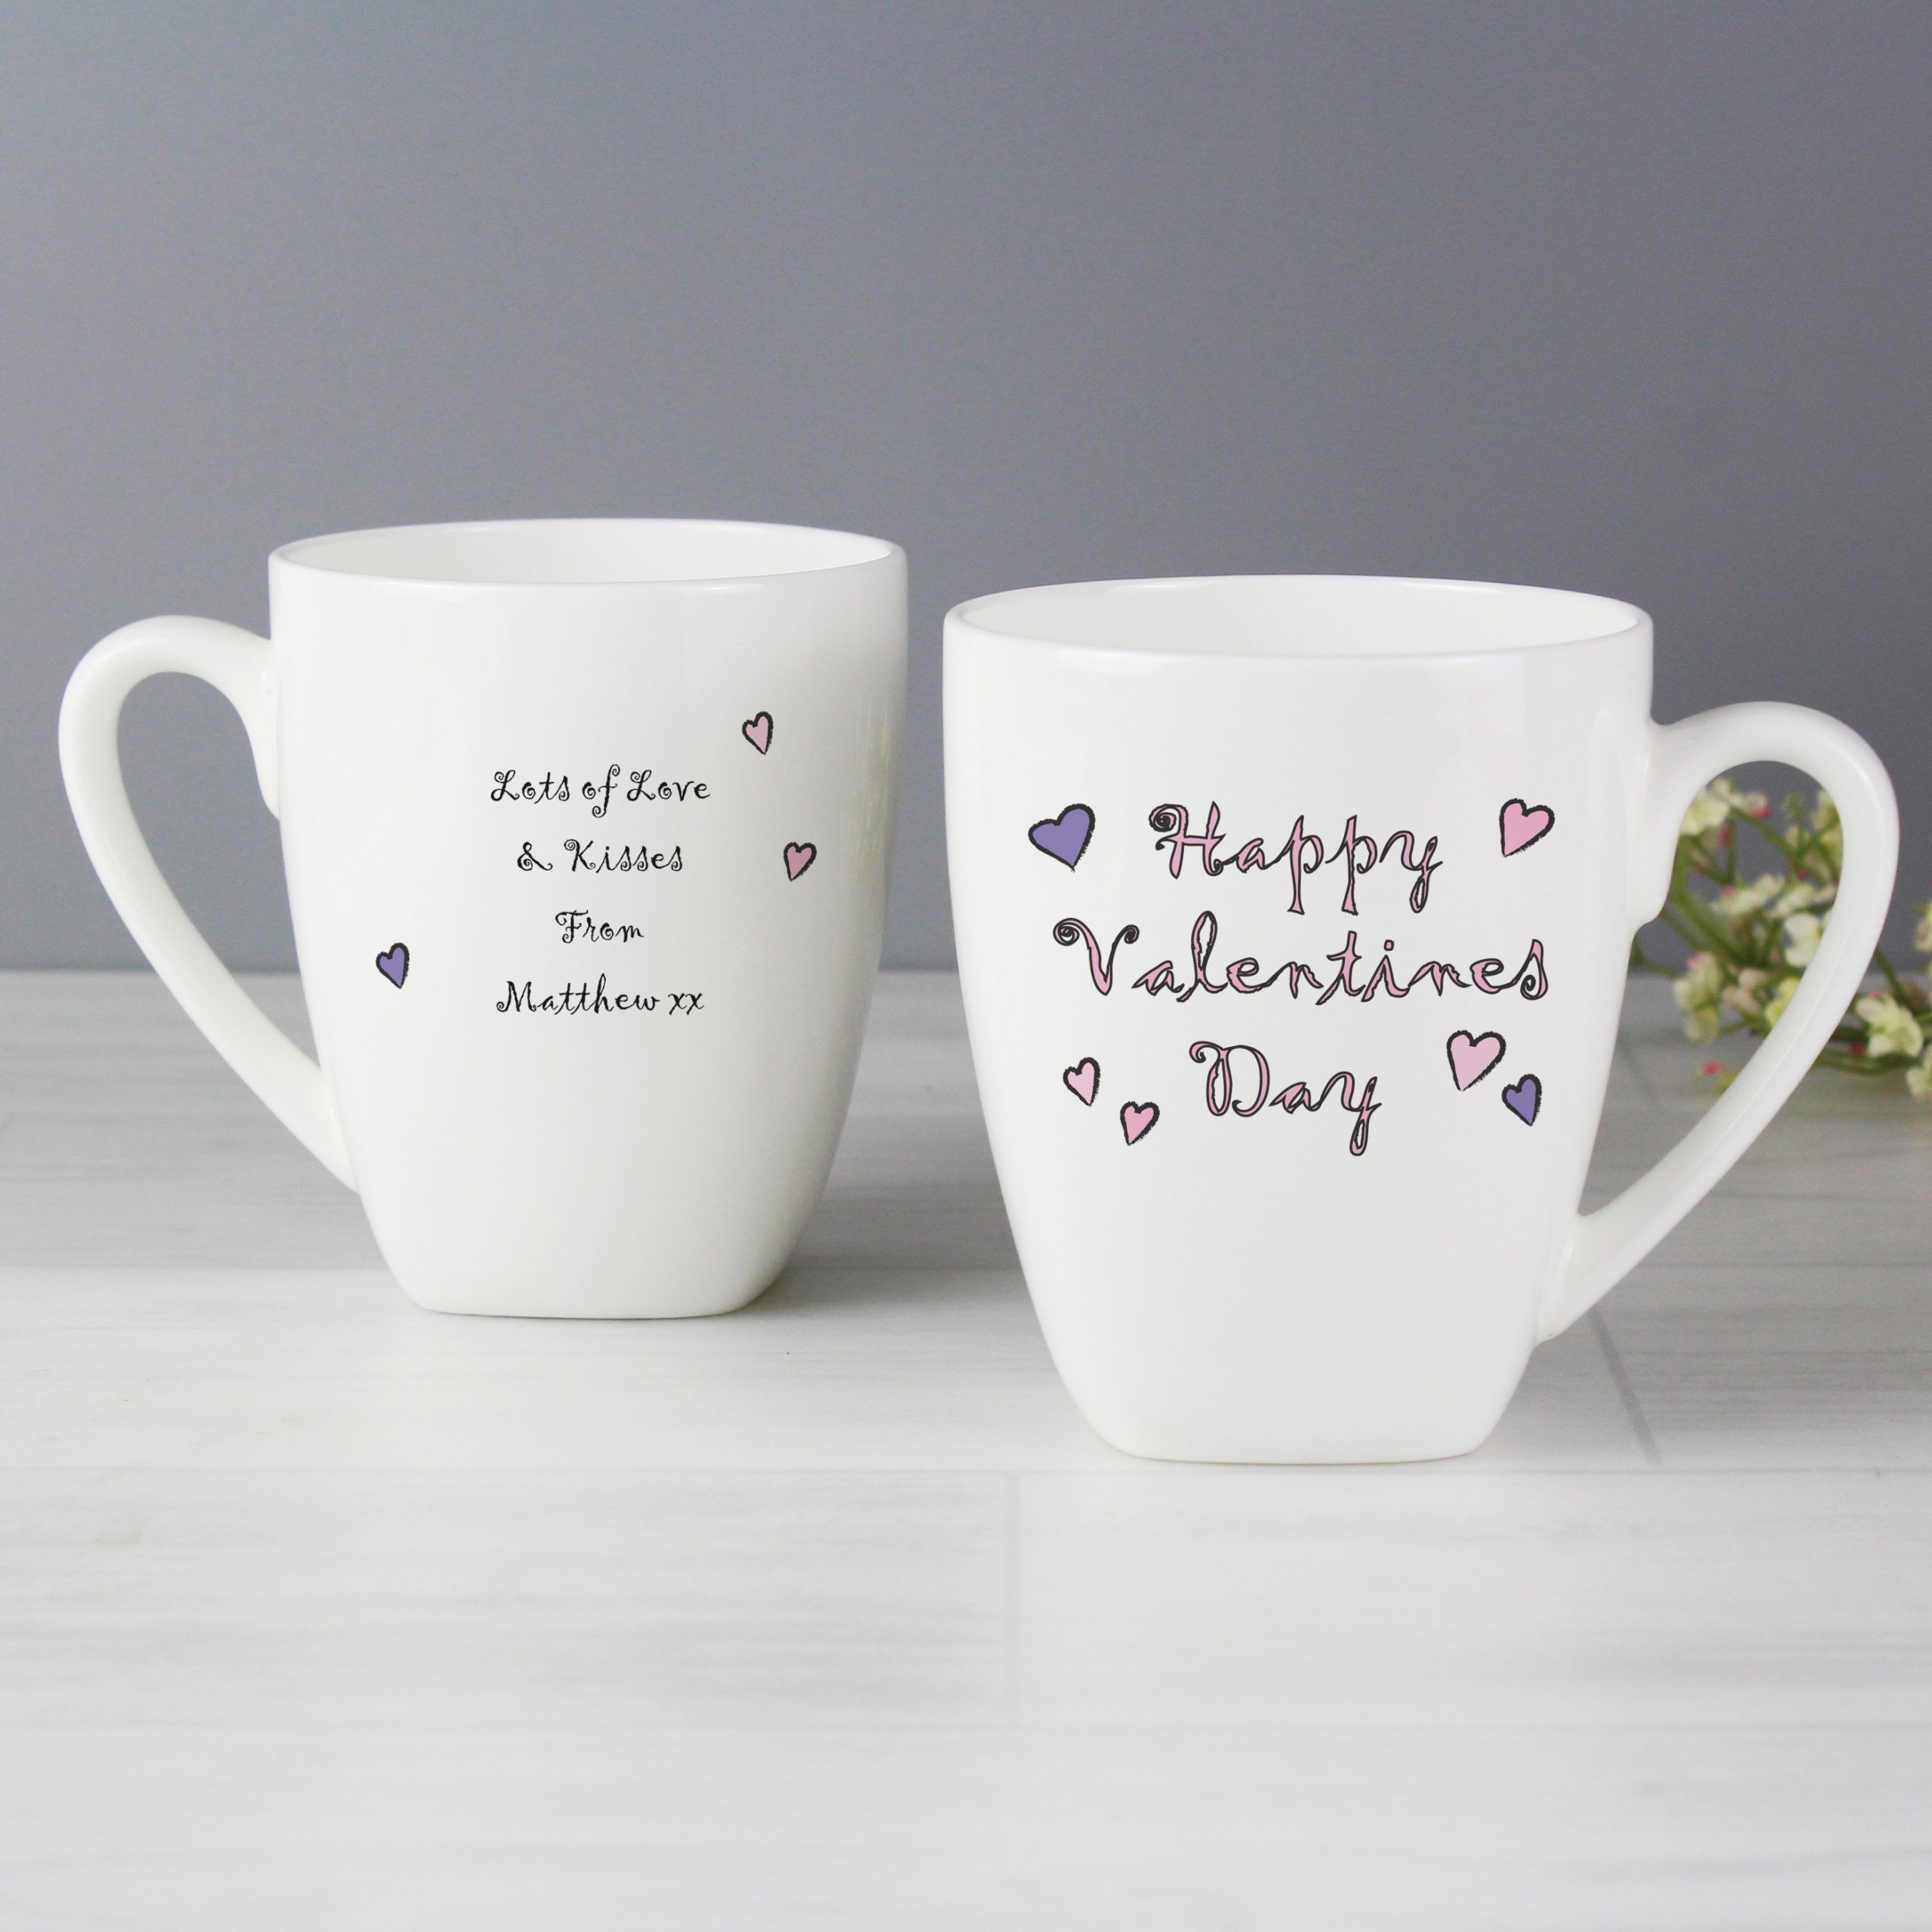 Happy valentine day latte mug at personalised gifts r us